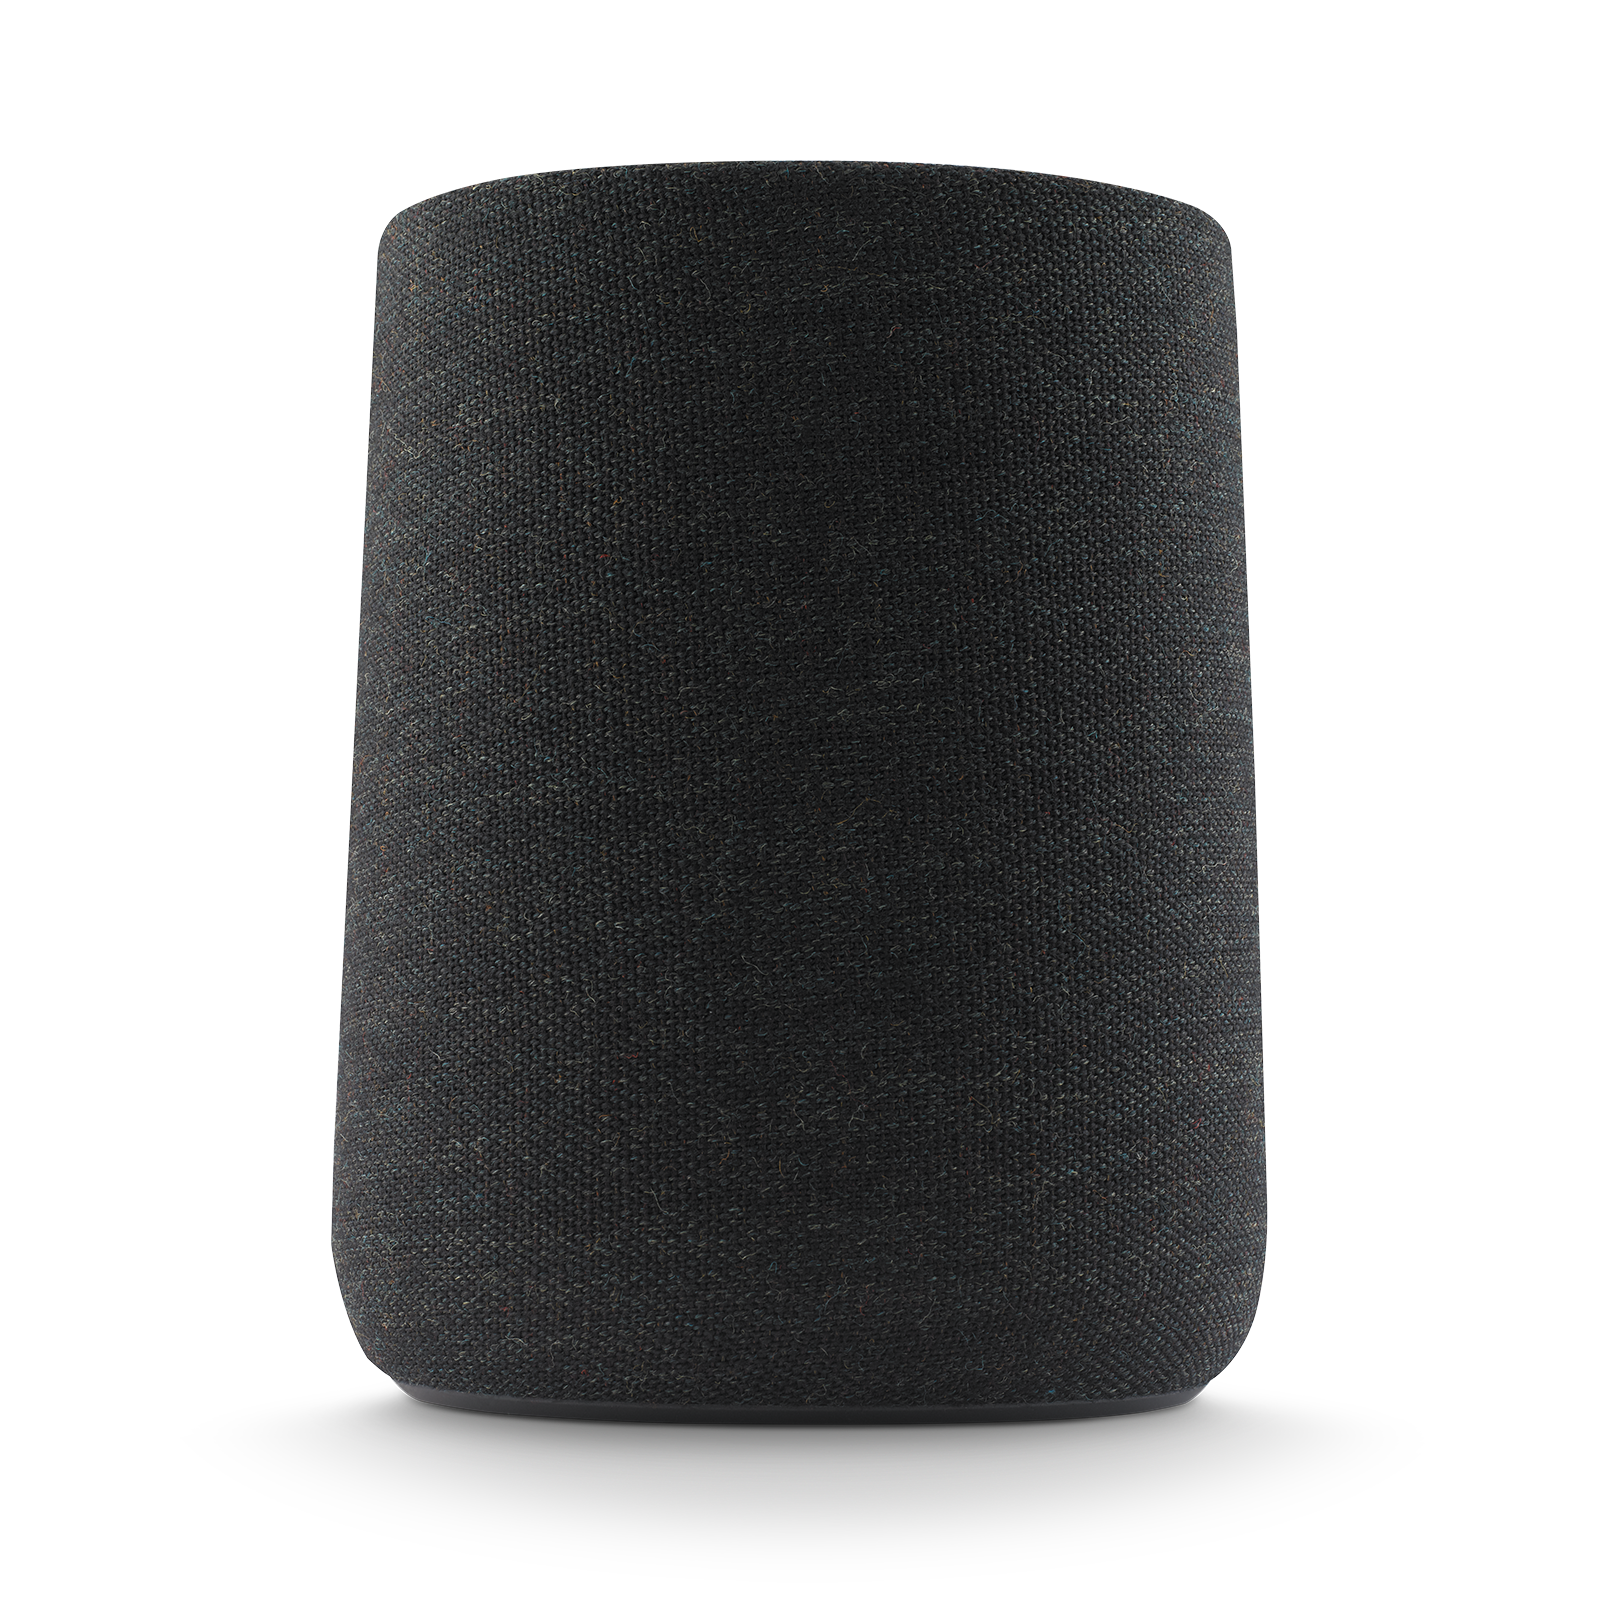 Harman Kardon Citation ONE - Black - Compact, smart and amazing sound - Detailshot 1